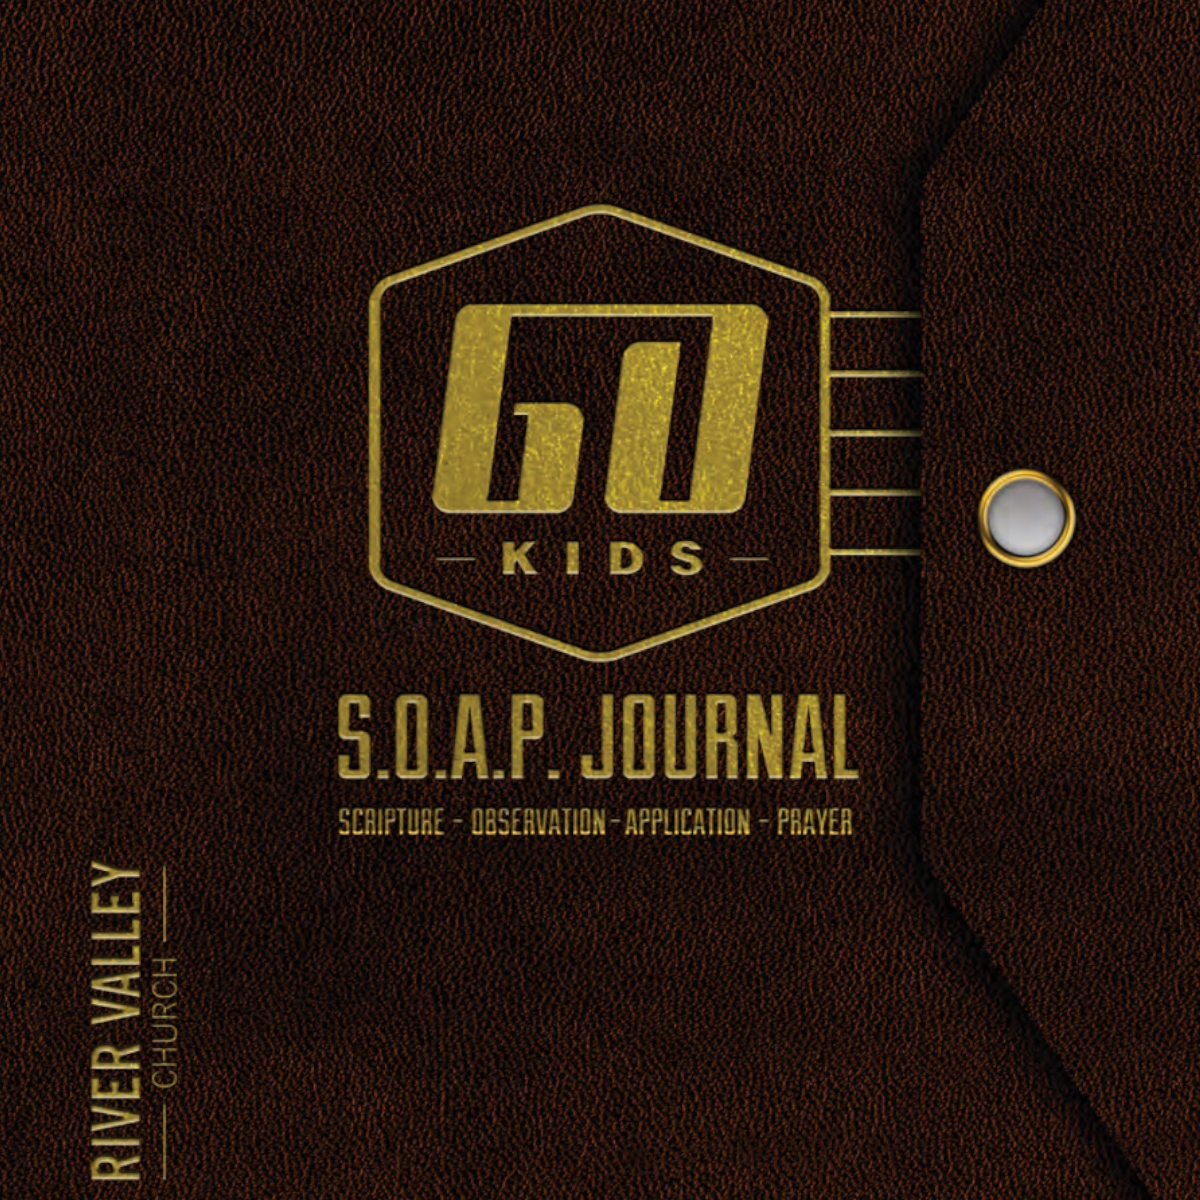 Go Kids SOAP Journal - Go Kids